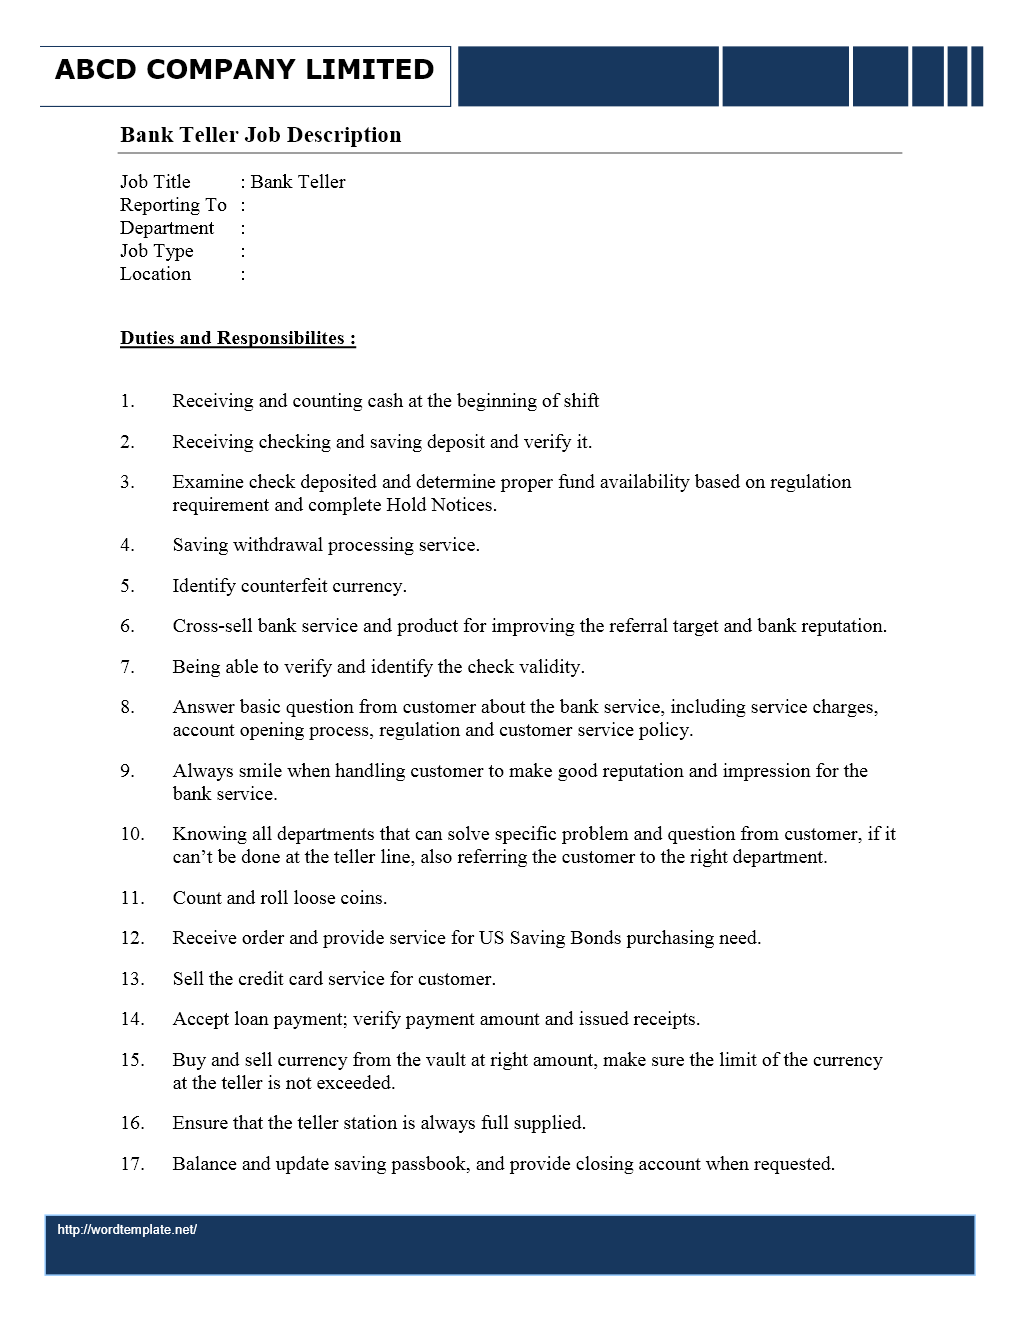 com page of business resume bank teller job description resume sample